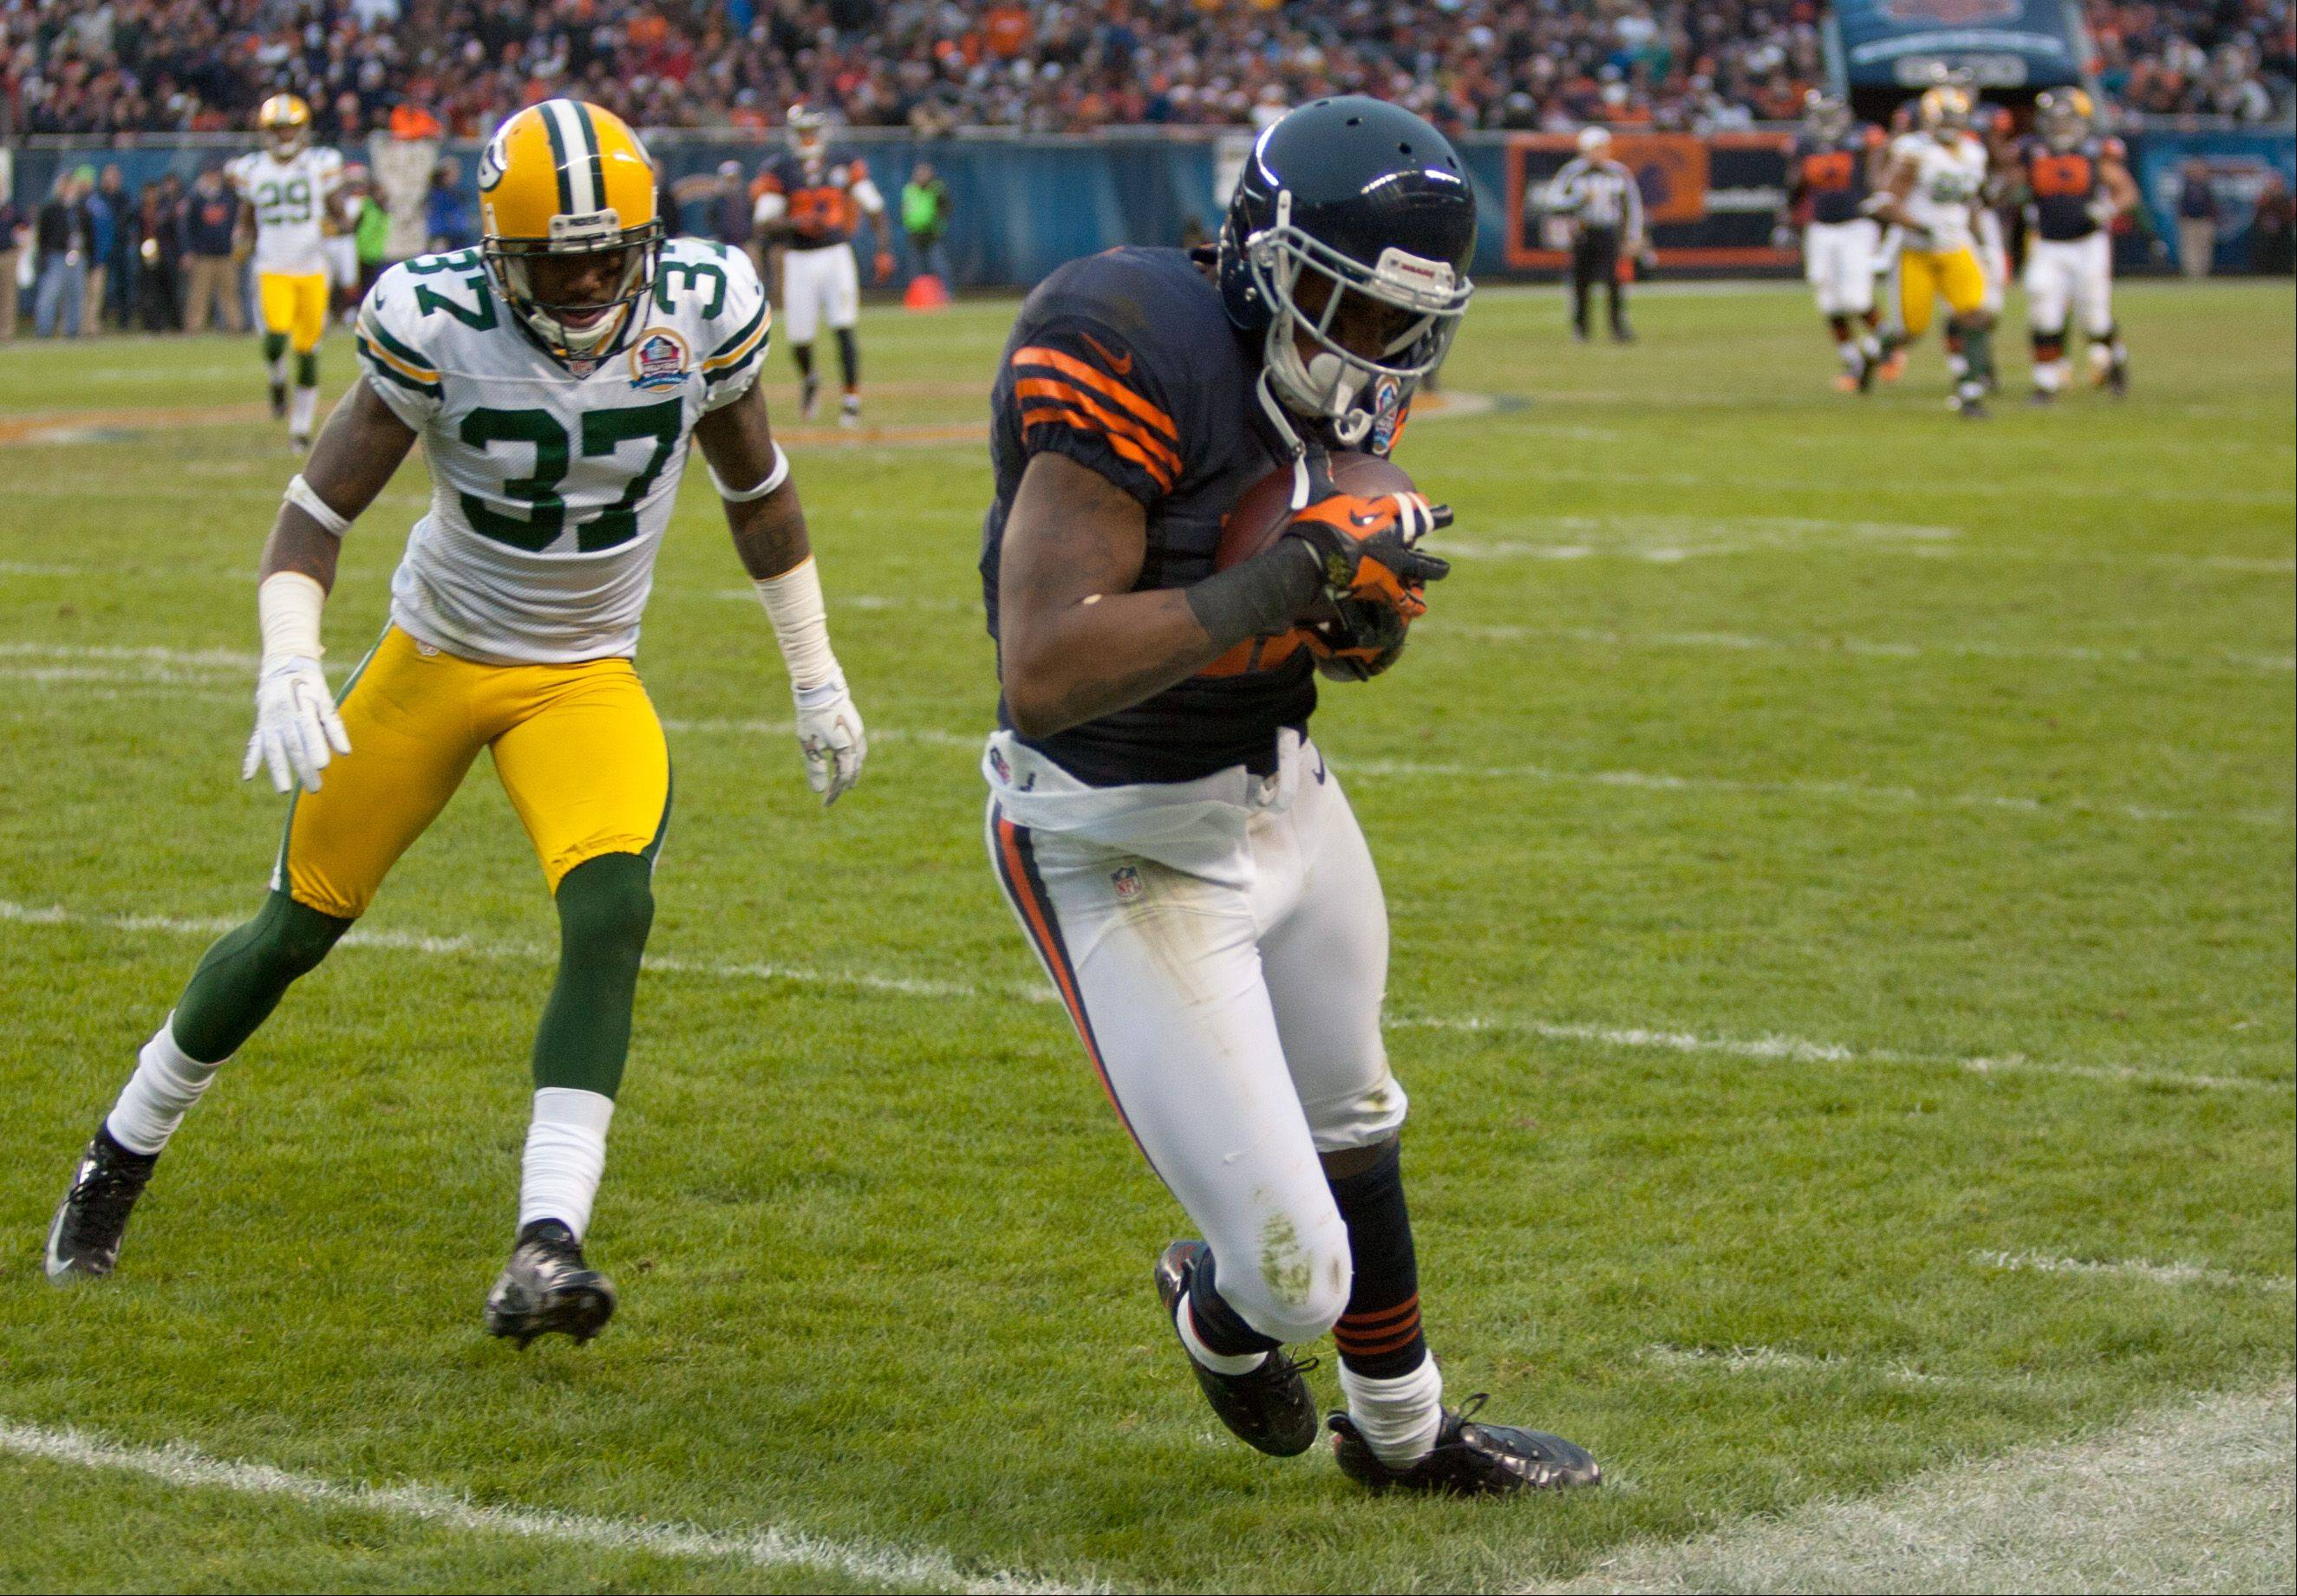 The Bears' Alshon Jeffery, right, makes a late fourth quarter catch, which was whistled back on his own pass interference call, during Sunday's game at Soldier Field in Chicago. At left is the Packer's Sam Shields.